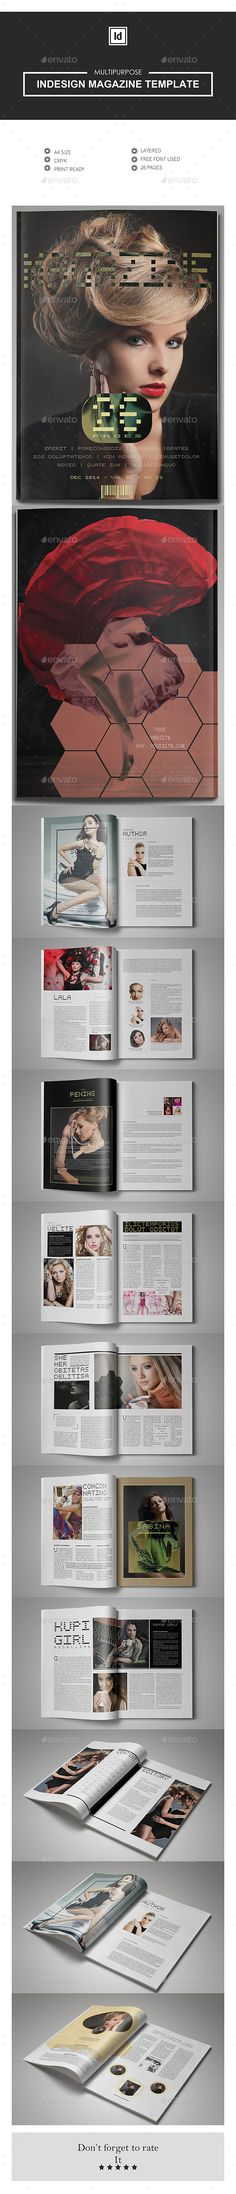 Professional InDesign magazine template that can be used for any type of industry. This item consist of 26 pages that fully editab